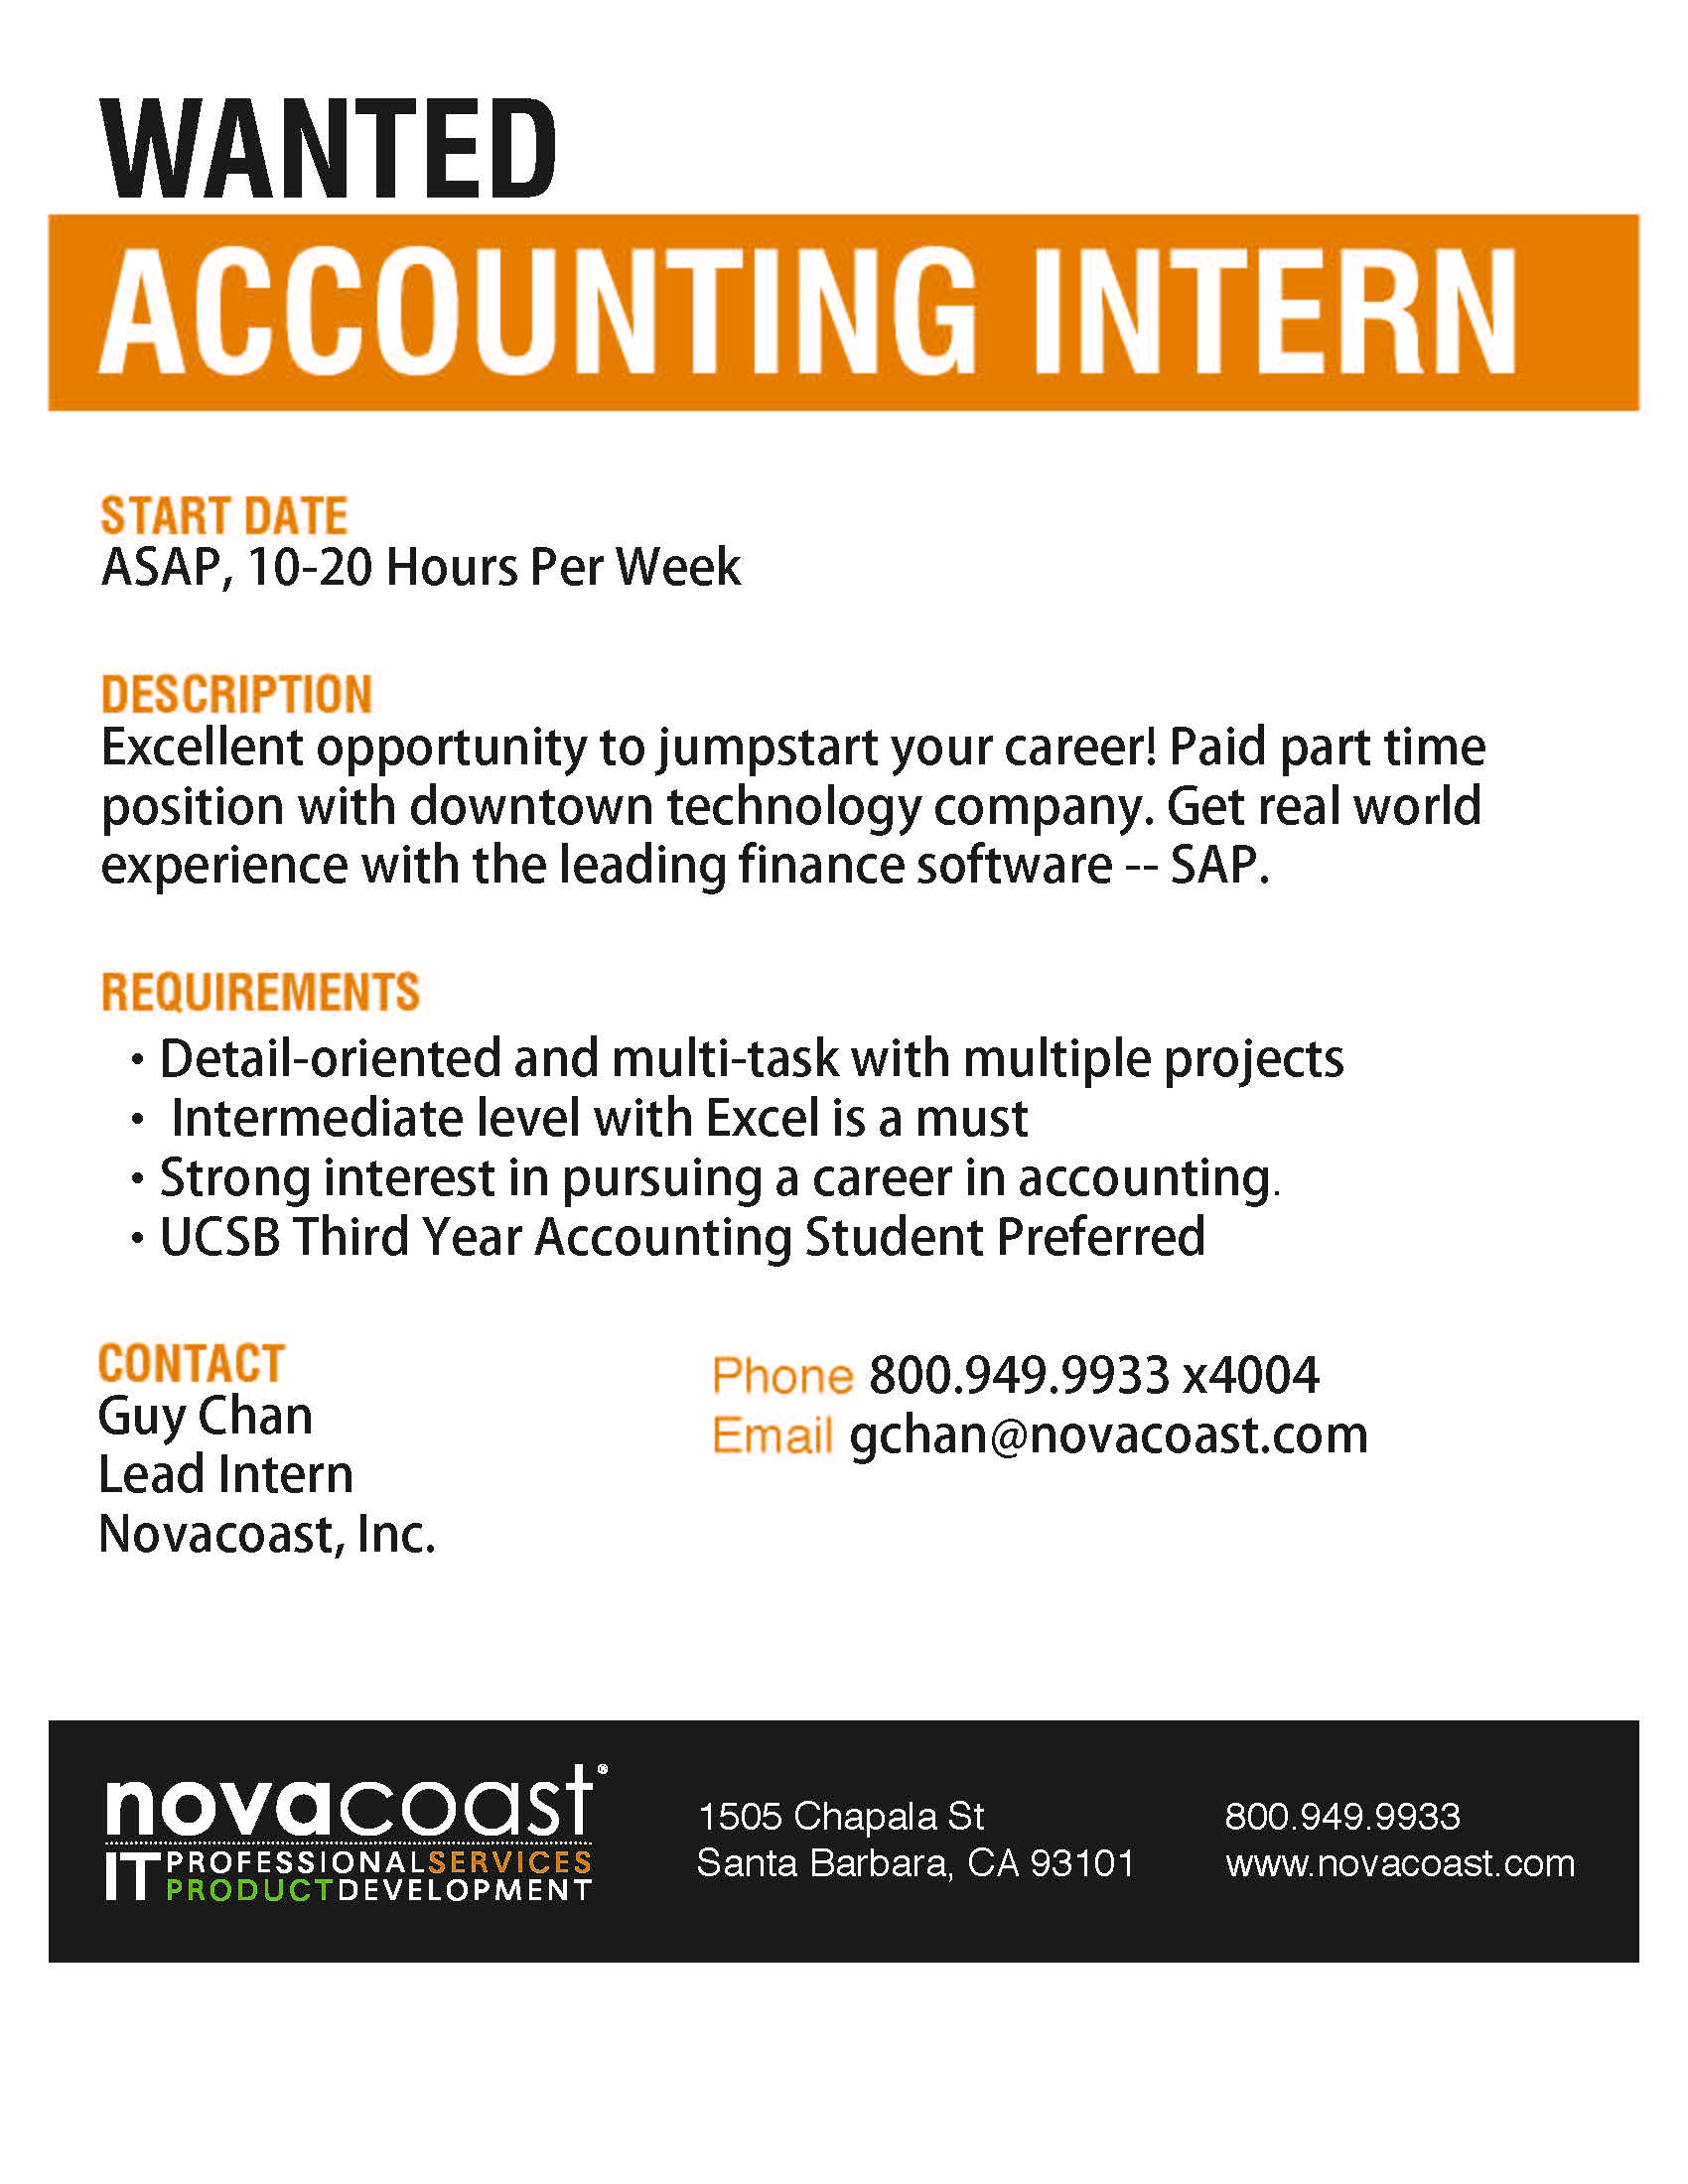 Novocoast Wanted Accounting Intern Santa Barbara